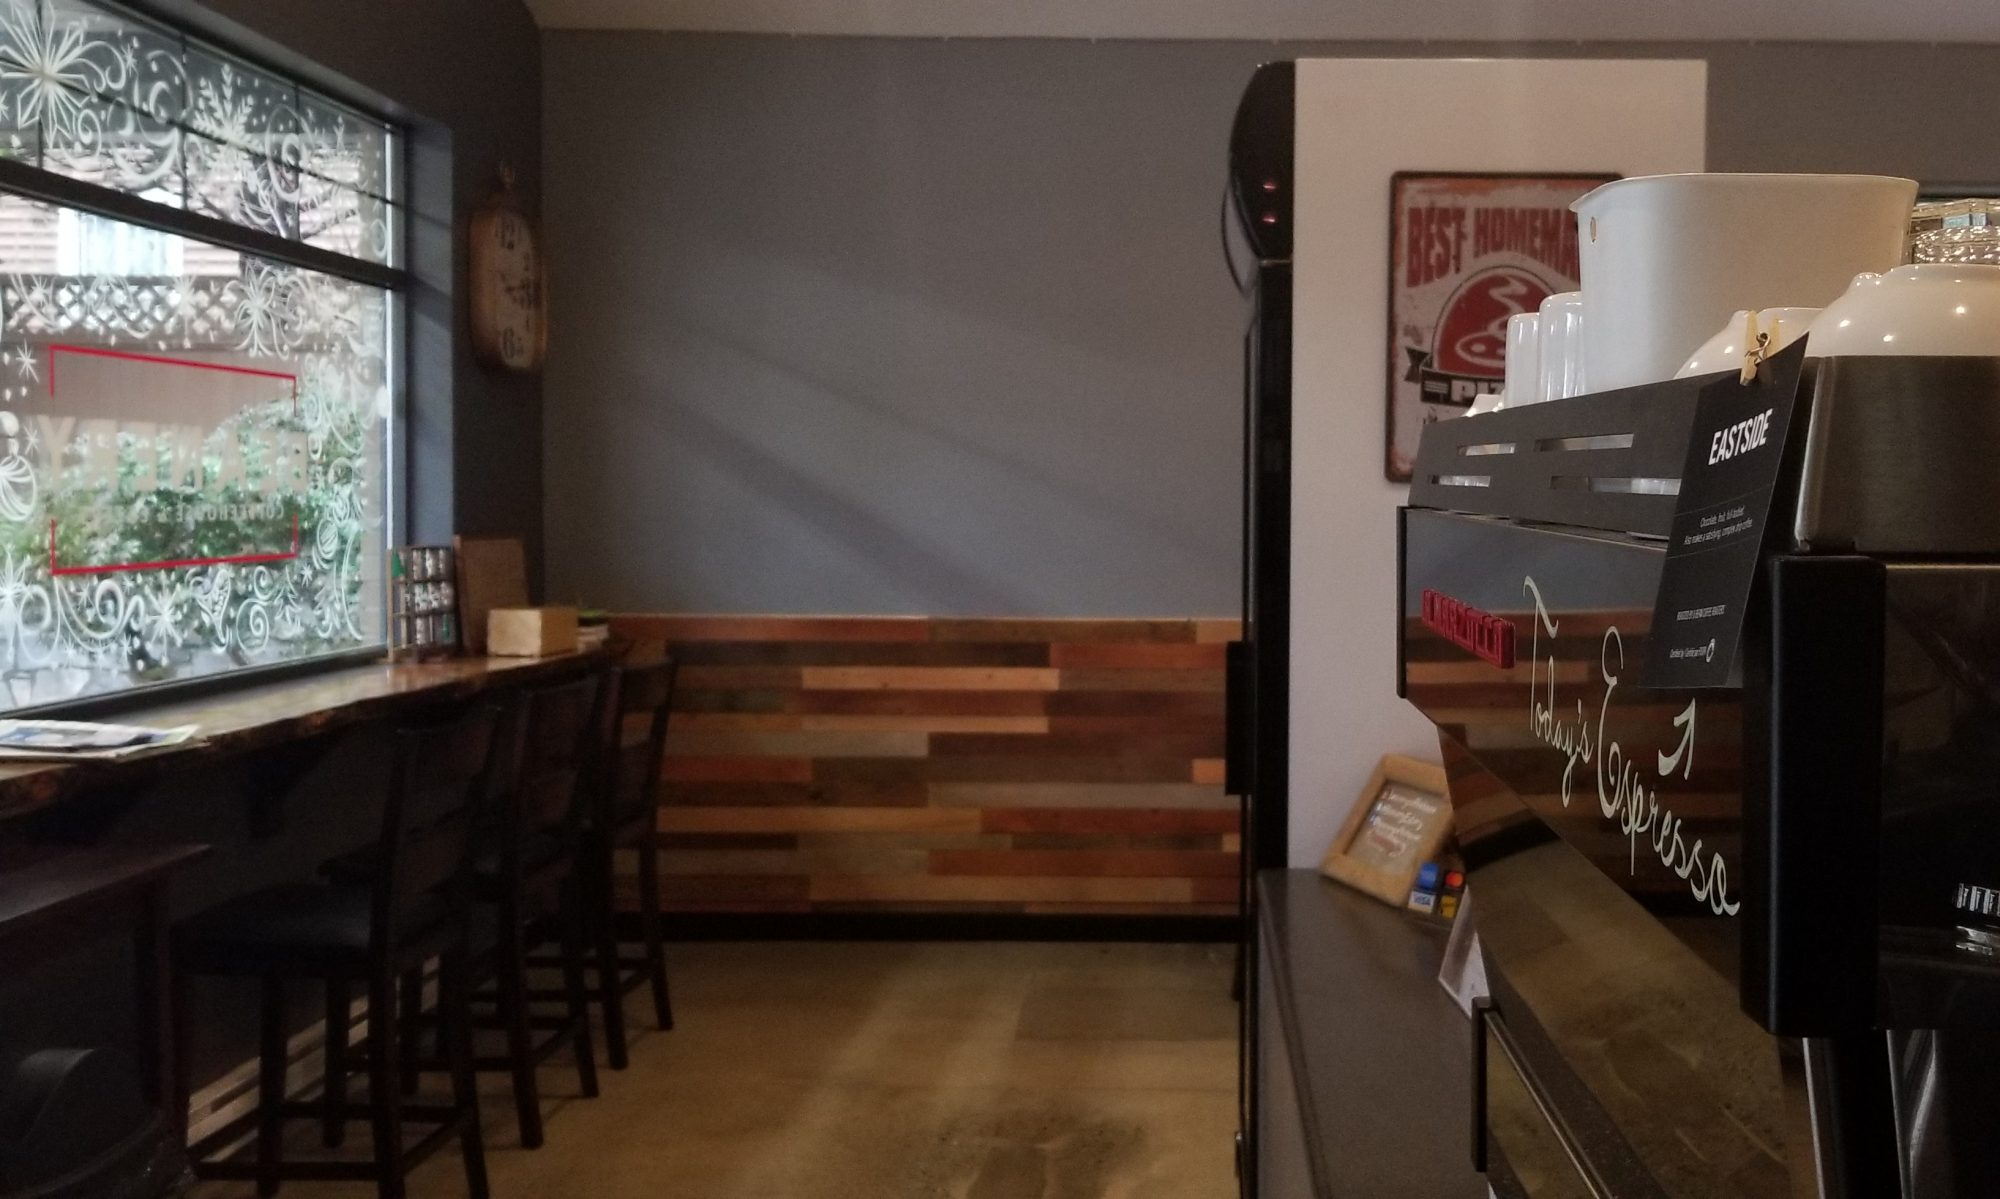 Beanery Coffeehouse & Eatery, Coquitlam BC